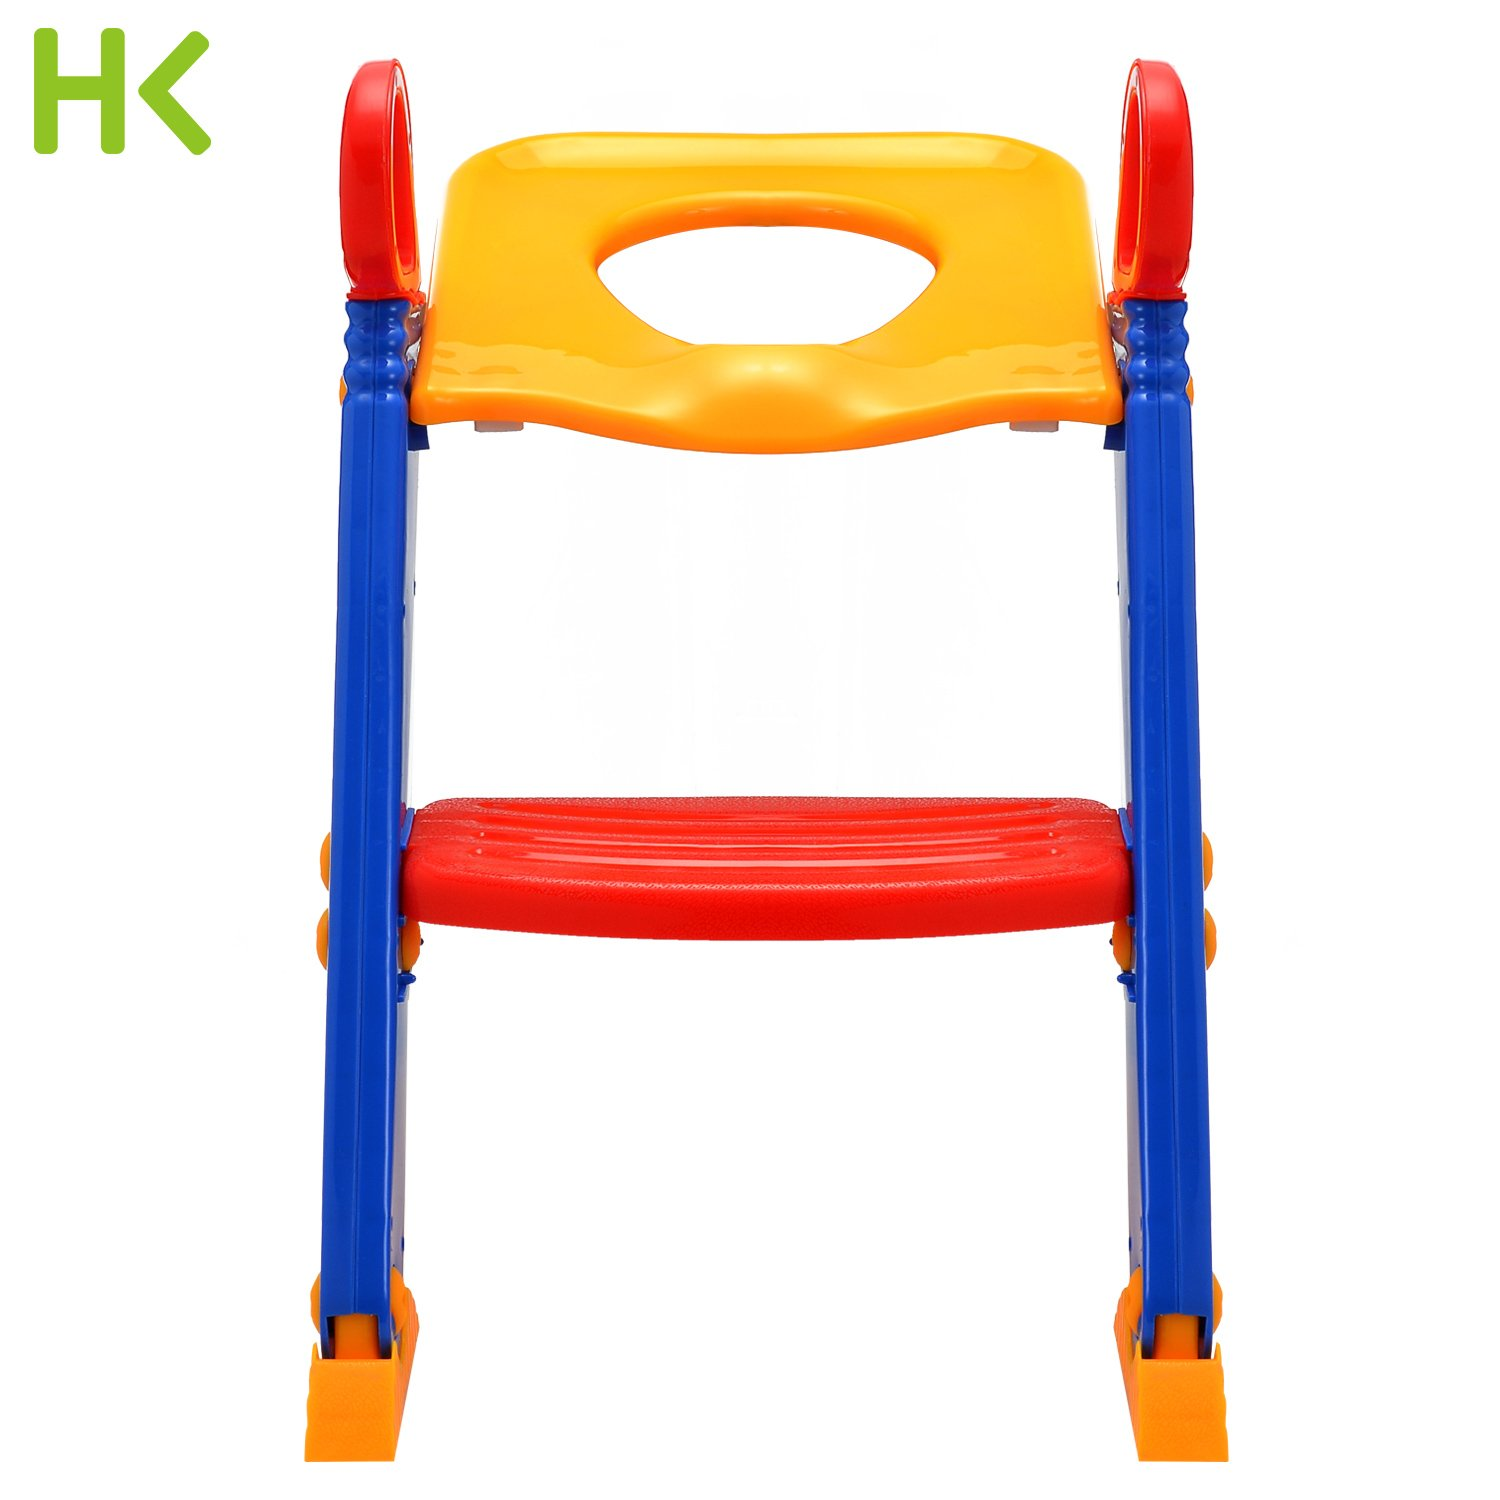 Joy Potty Training Seat Ladder Step Up Potty Seat Toilet Contoured Cushion Step Up Potty Trainer Toilet Training Step Stool for Kids and Toddlers Training Seat